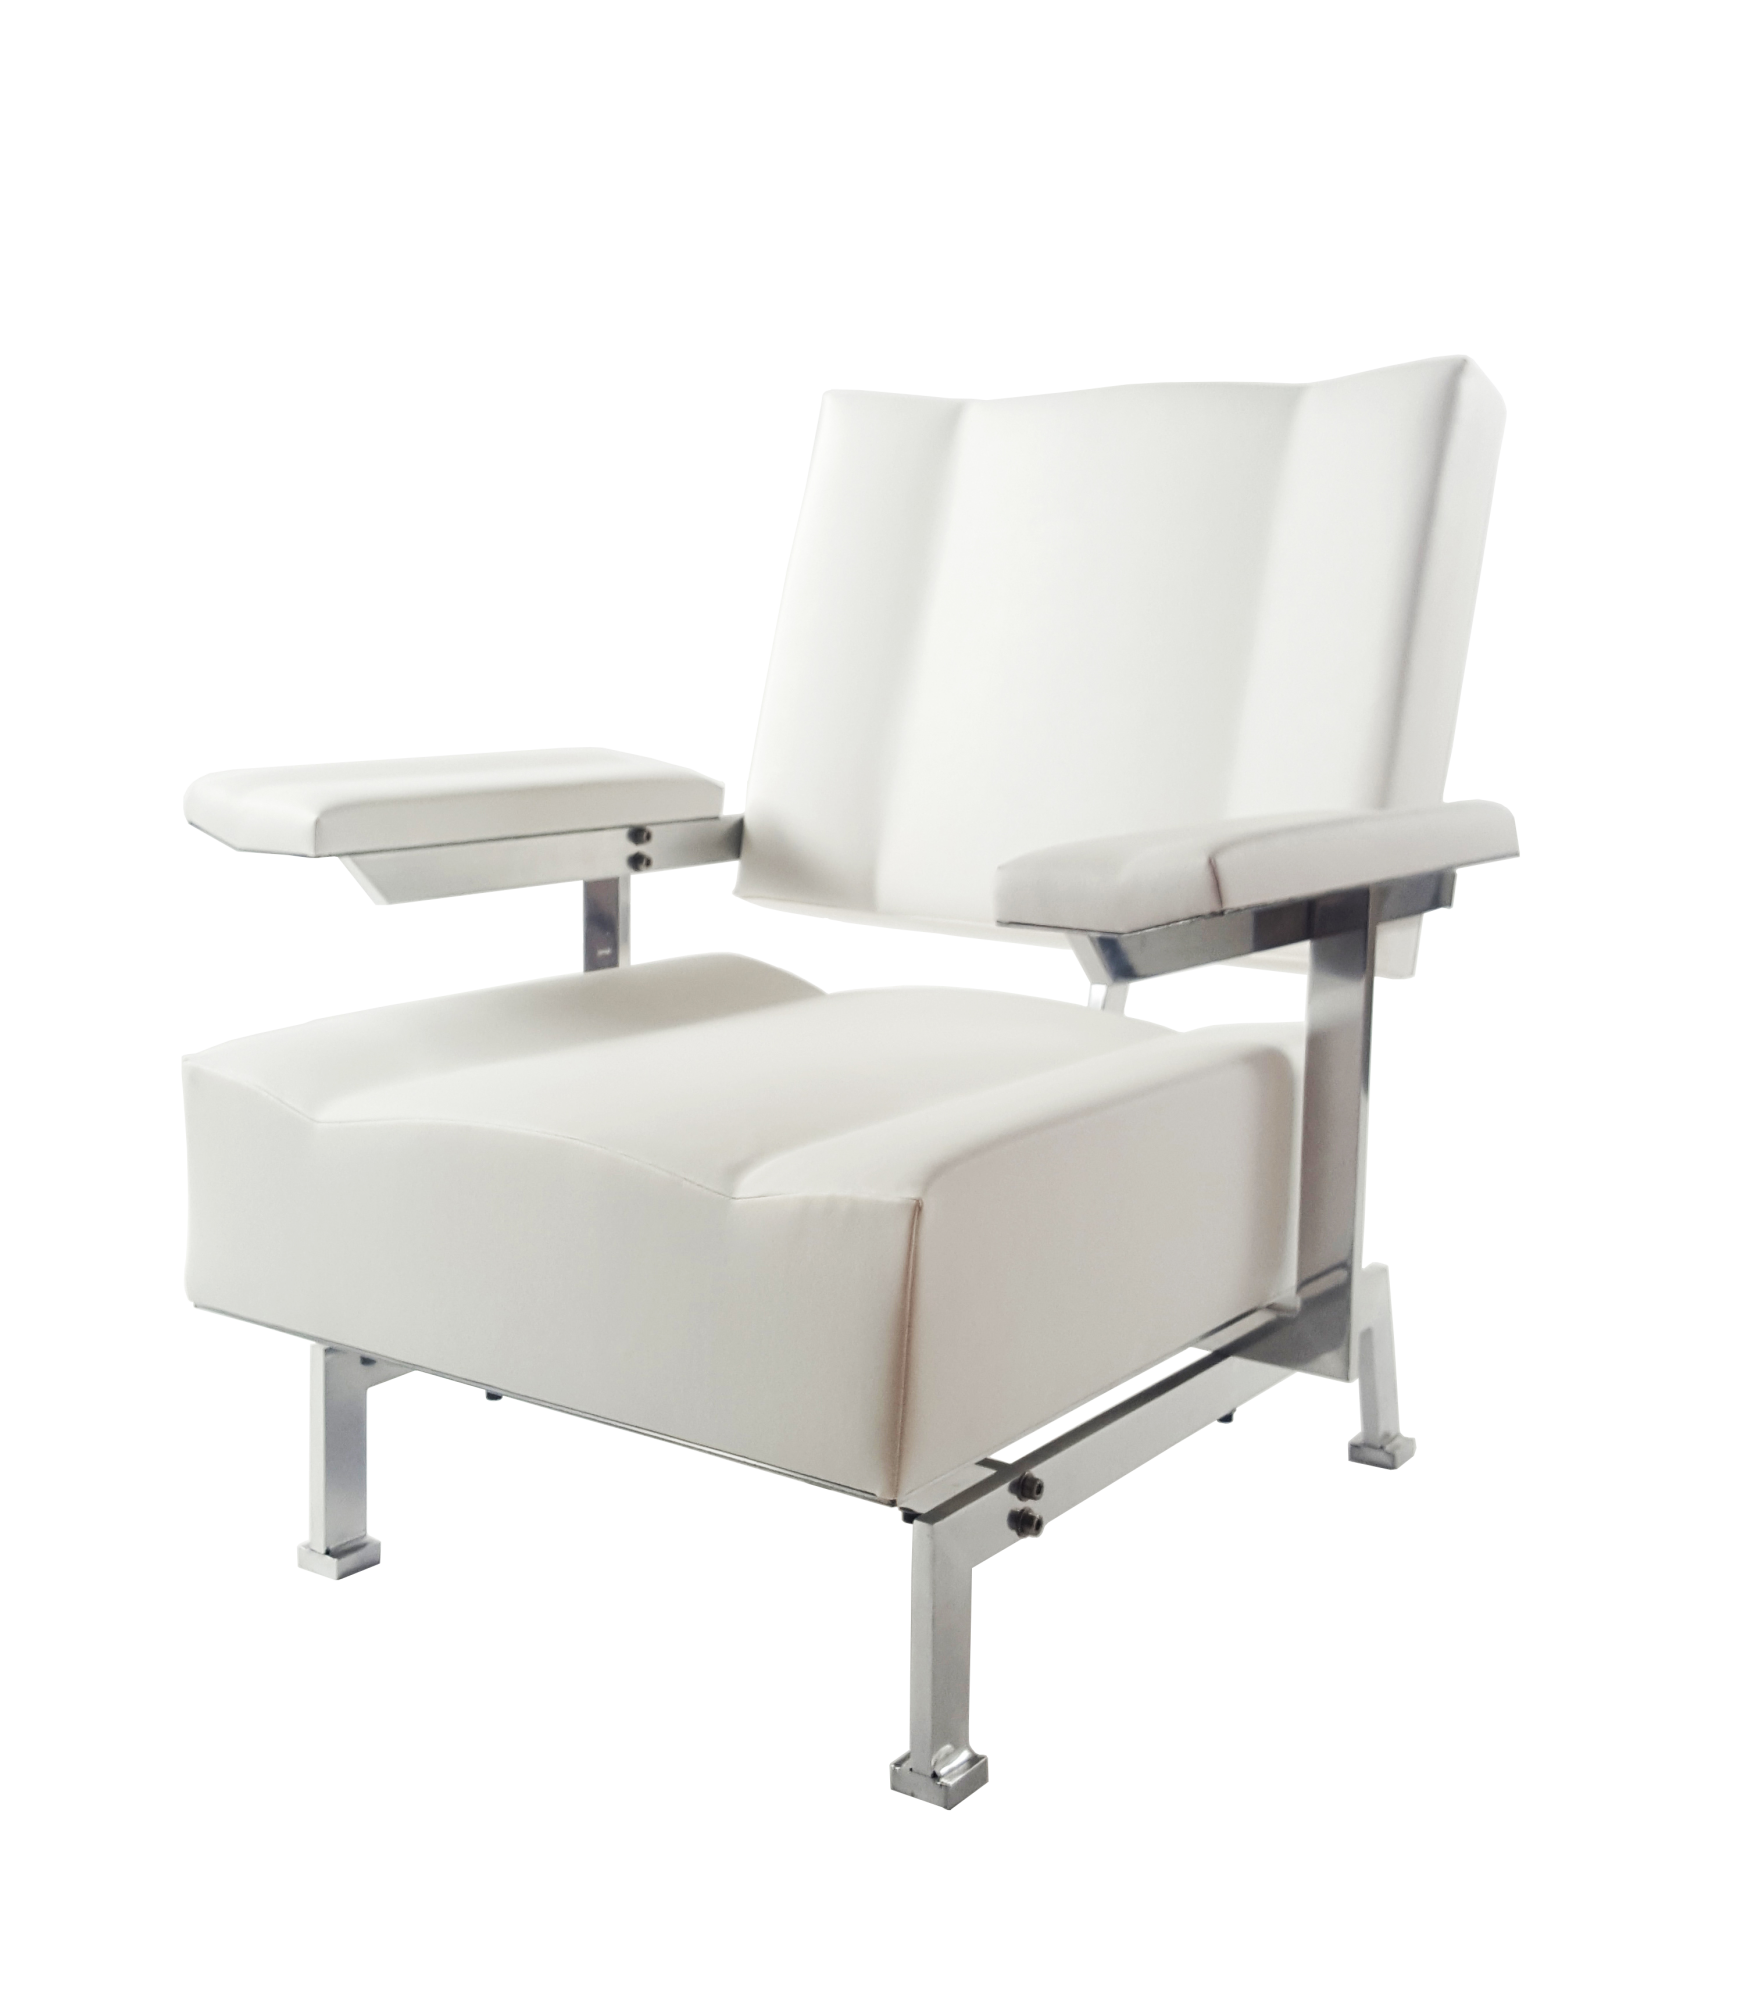 fauteuil paquebot france design marty henryot & cie